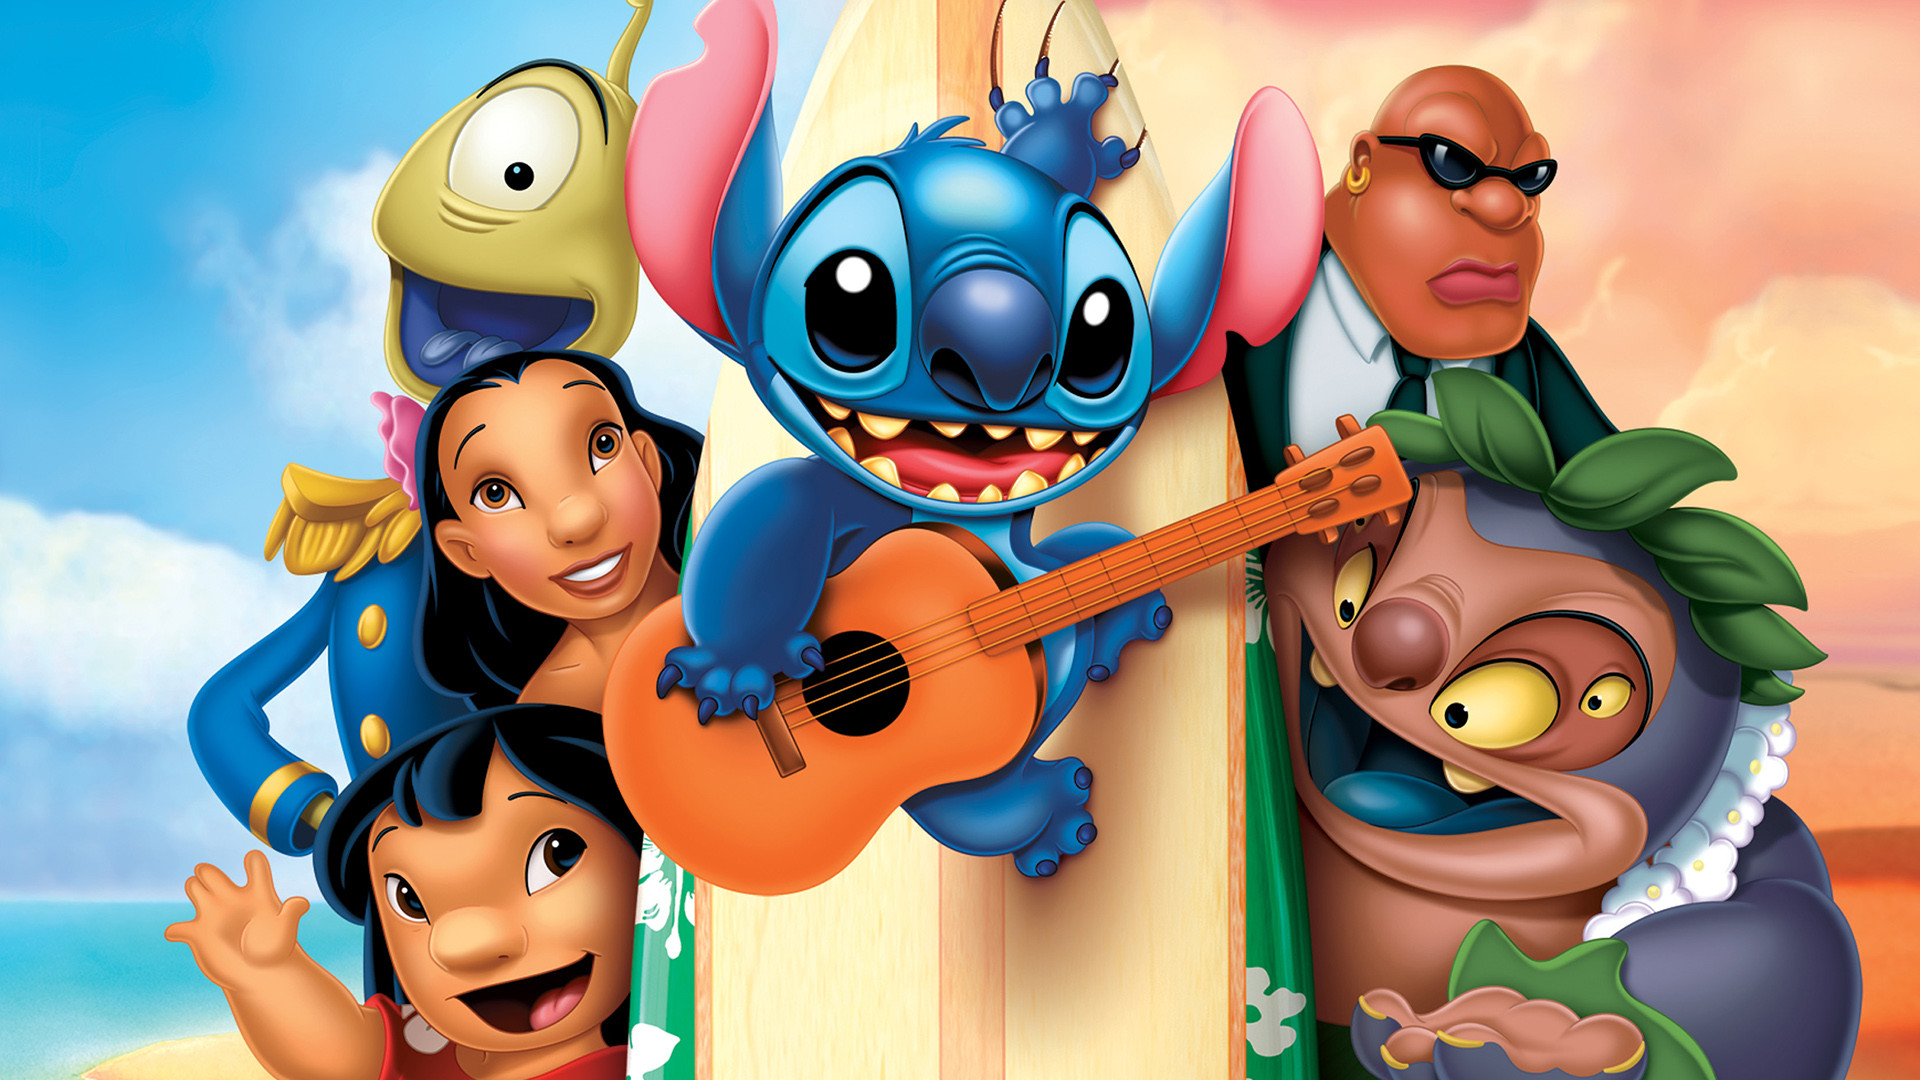 2880x1800 Wallpaper Iphone Tumblr Disney Pesquisa Google Favs Background Download 1920x1536 Lilo And Stitch